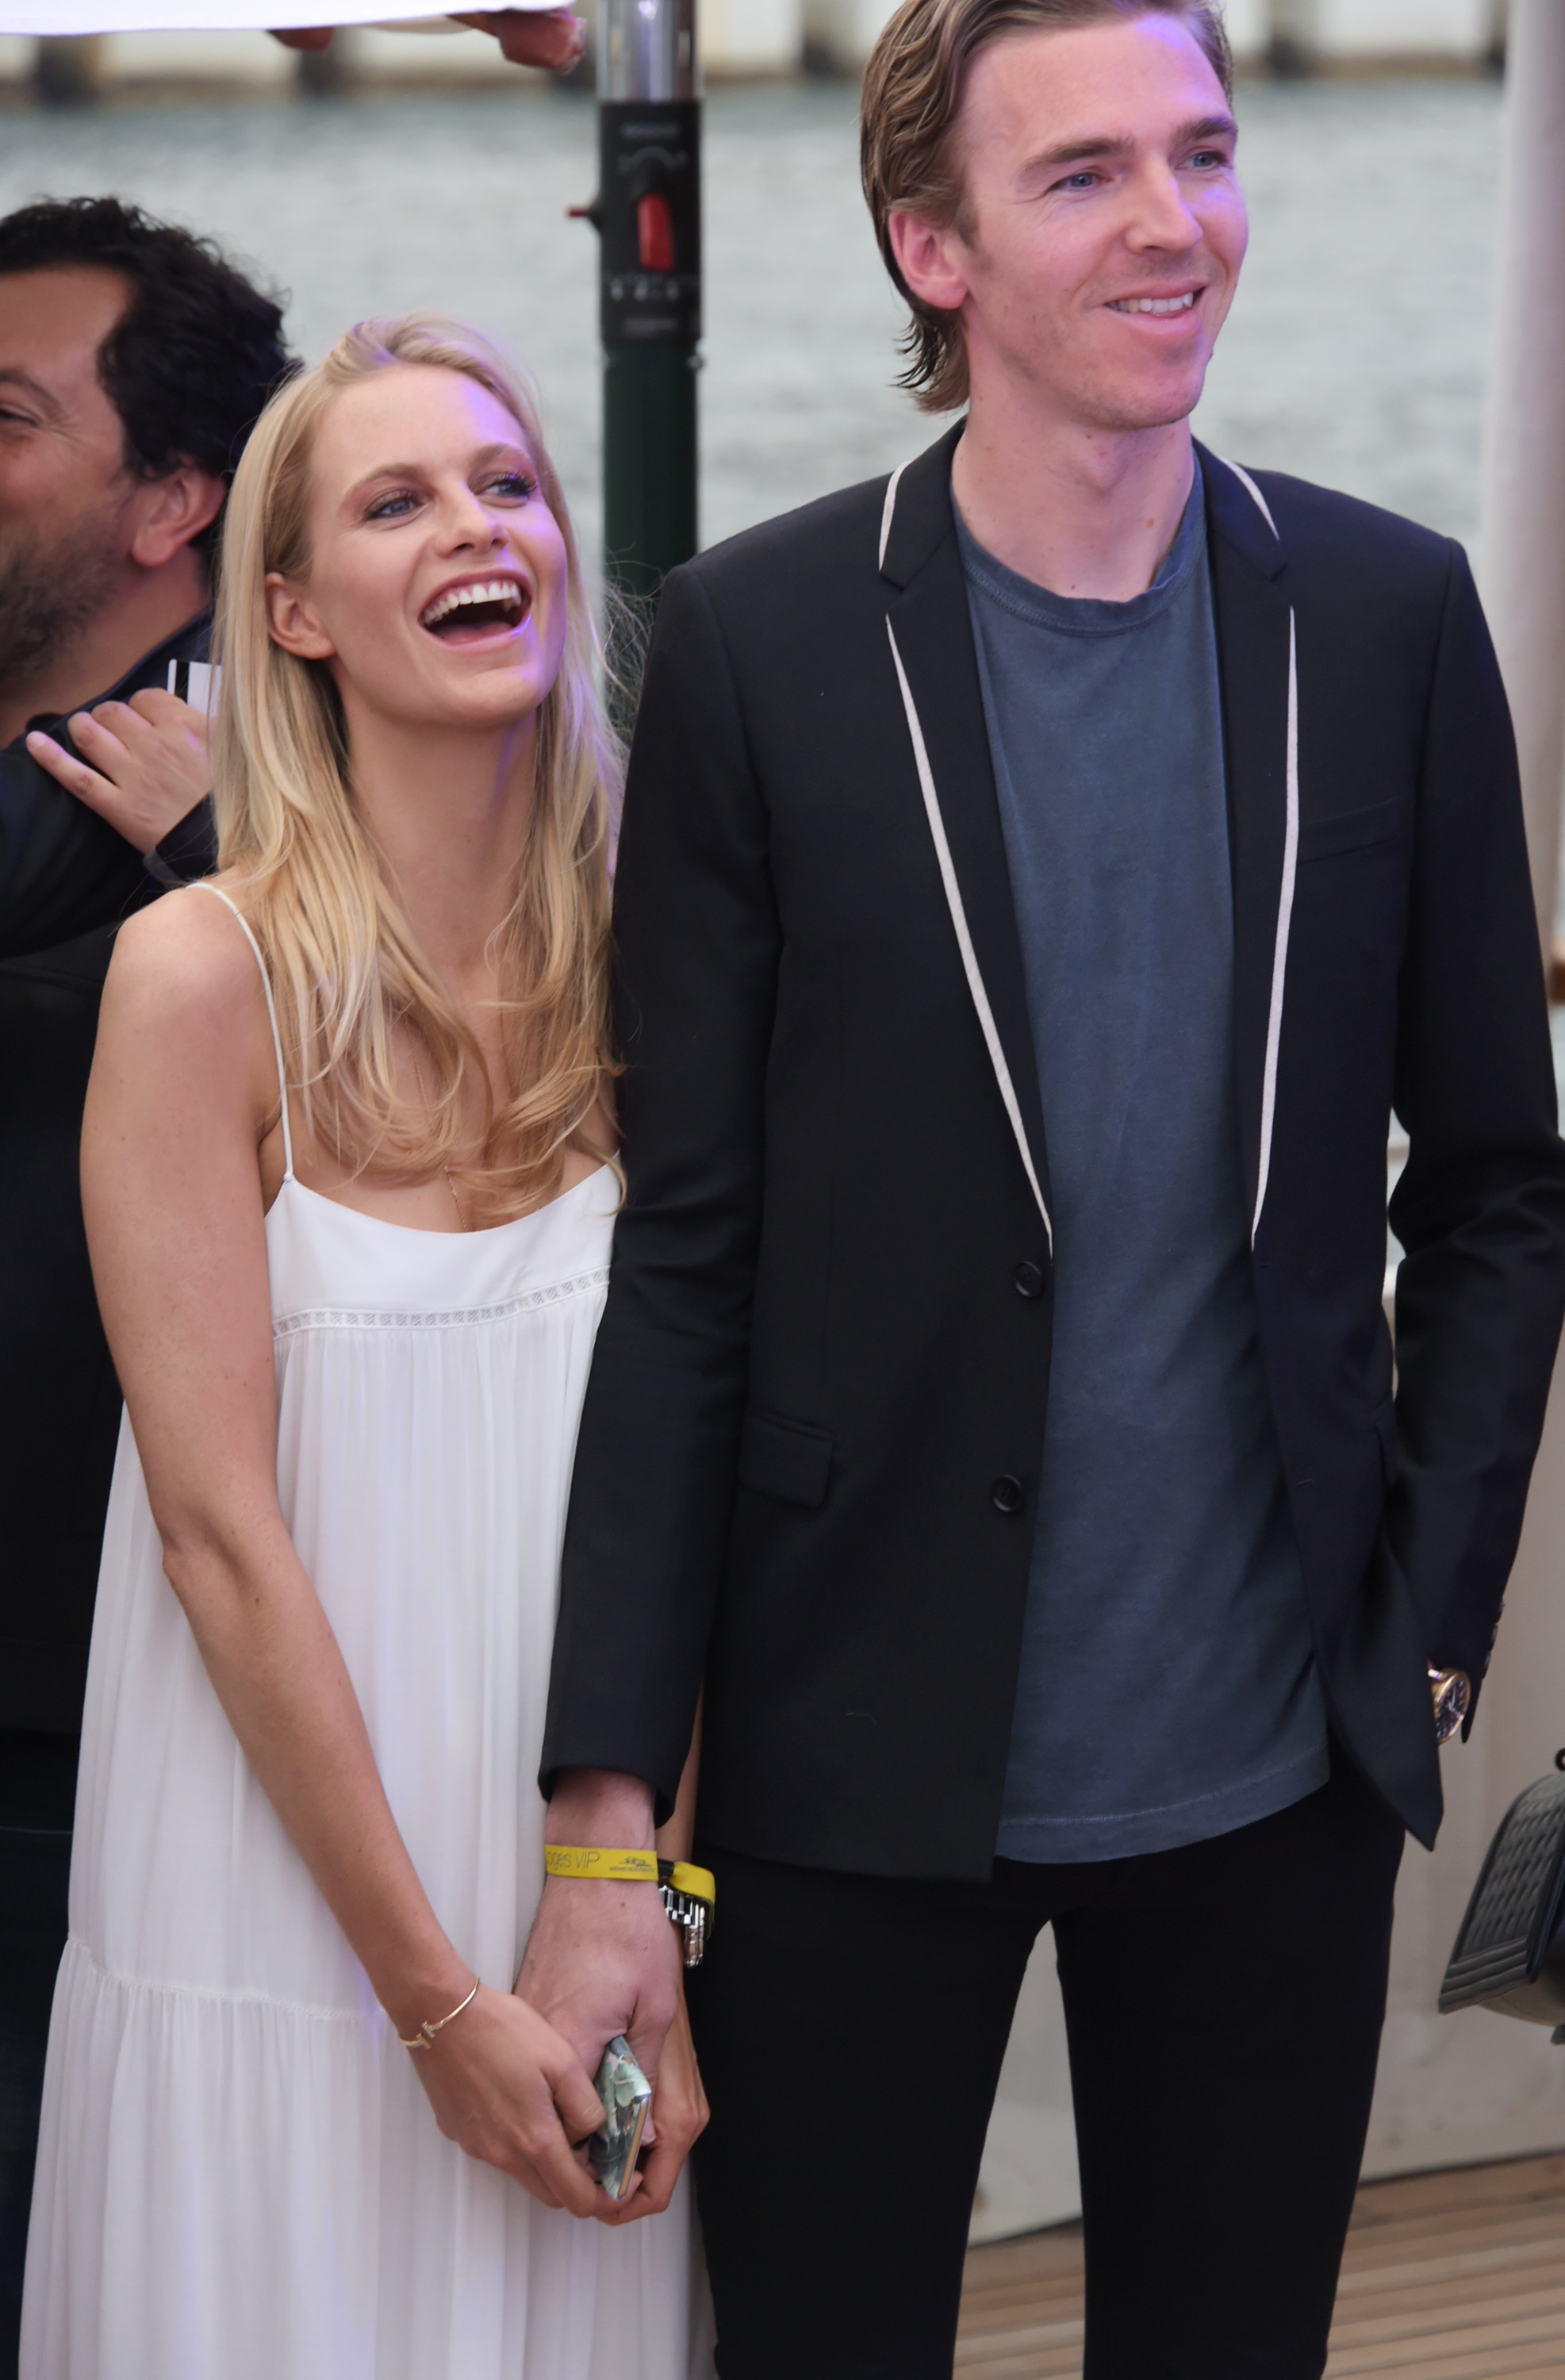 MONACO - MAY 23:  Poppy Delevingne (L) and James Cook attend the TAG Heuer Monaco Party on May 23, 2015 in Monaco, Monaco.  (Photo by David M. Benett/Getty Images for TAG Heuer) *** Local Caption *** Poppy Delevingne; James Cook